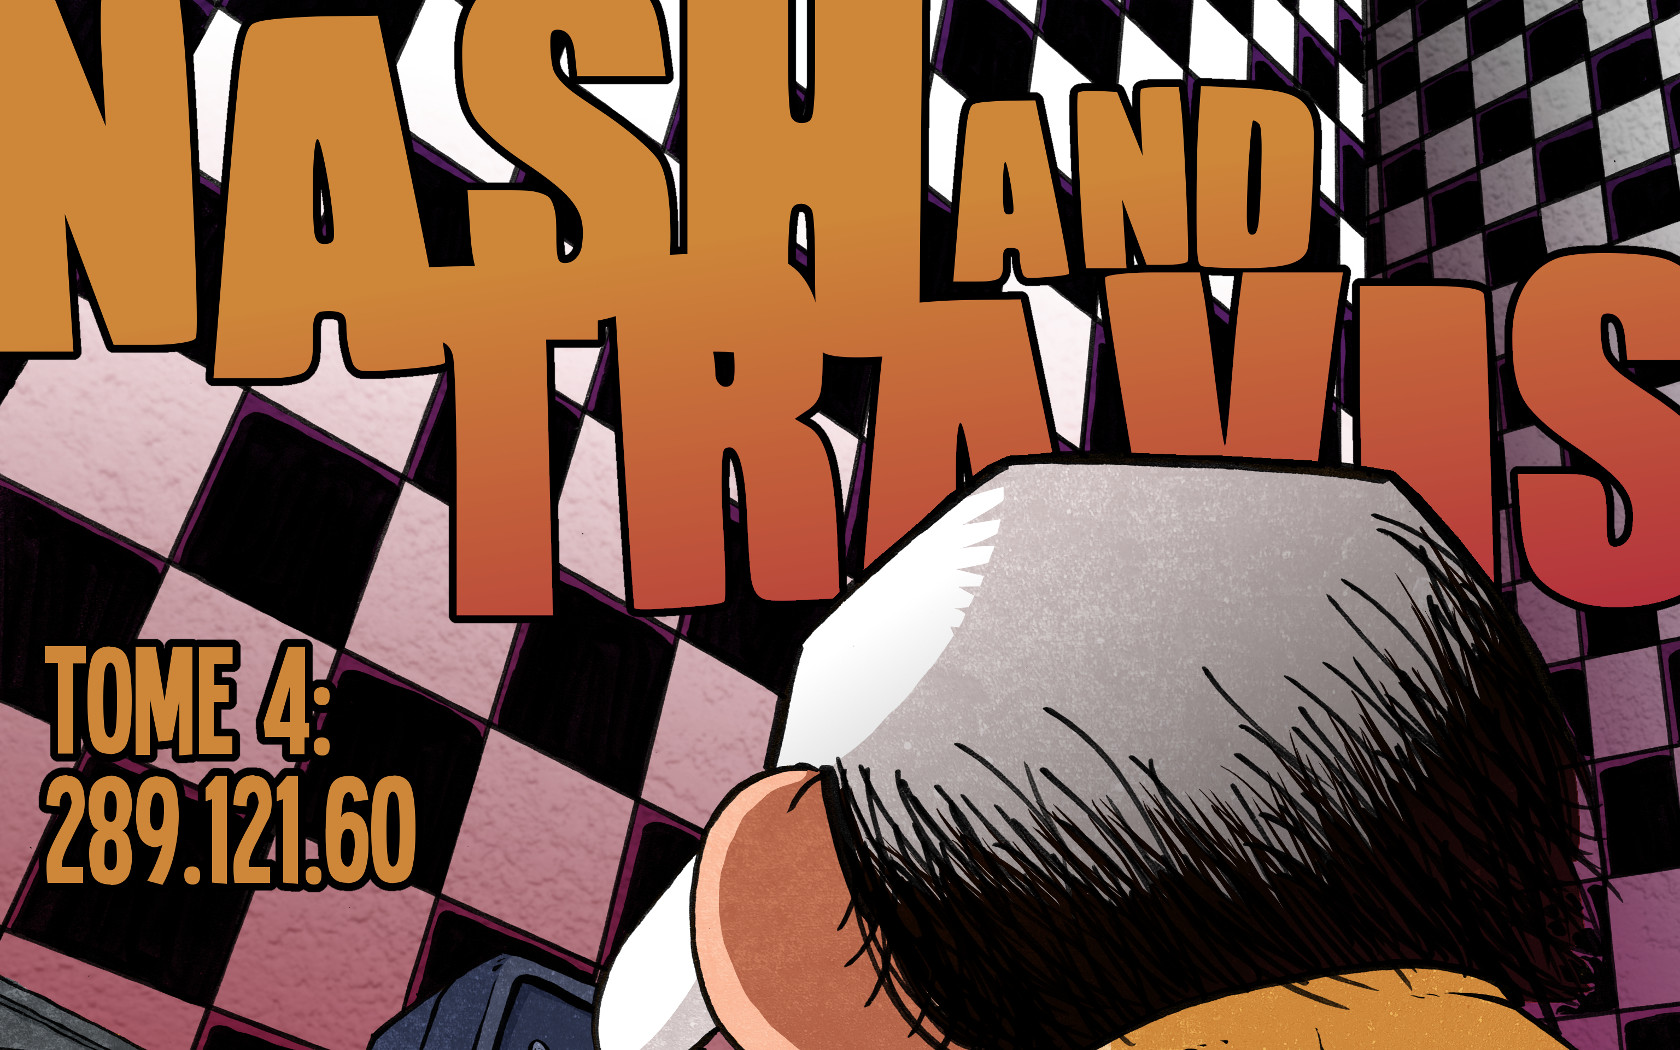 Nash and Travis tome 4